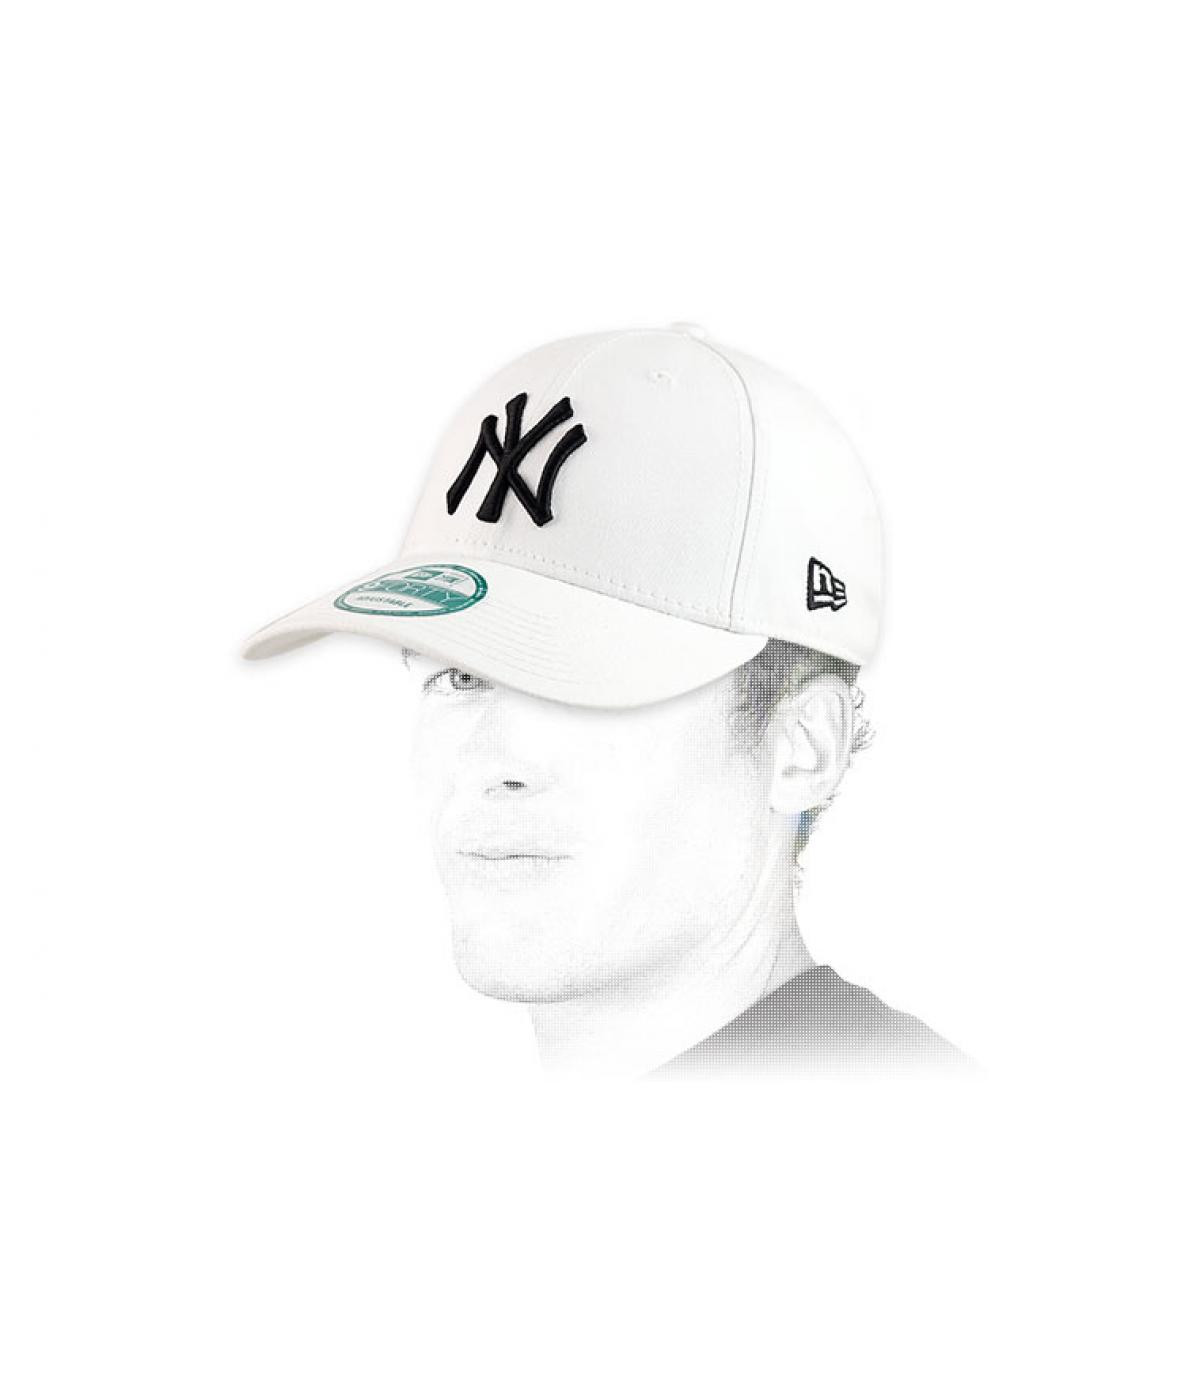 Détails White trucker NY fitted - image 5